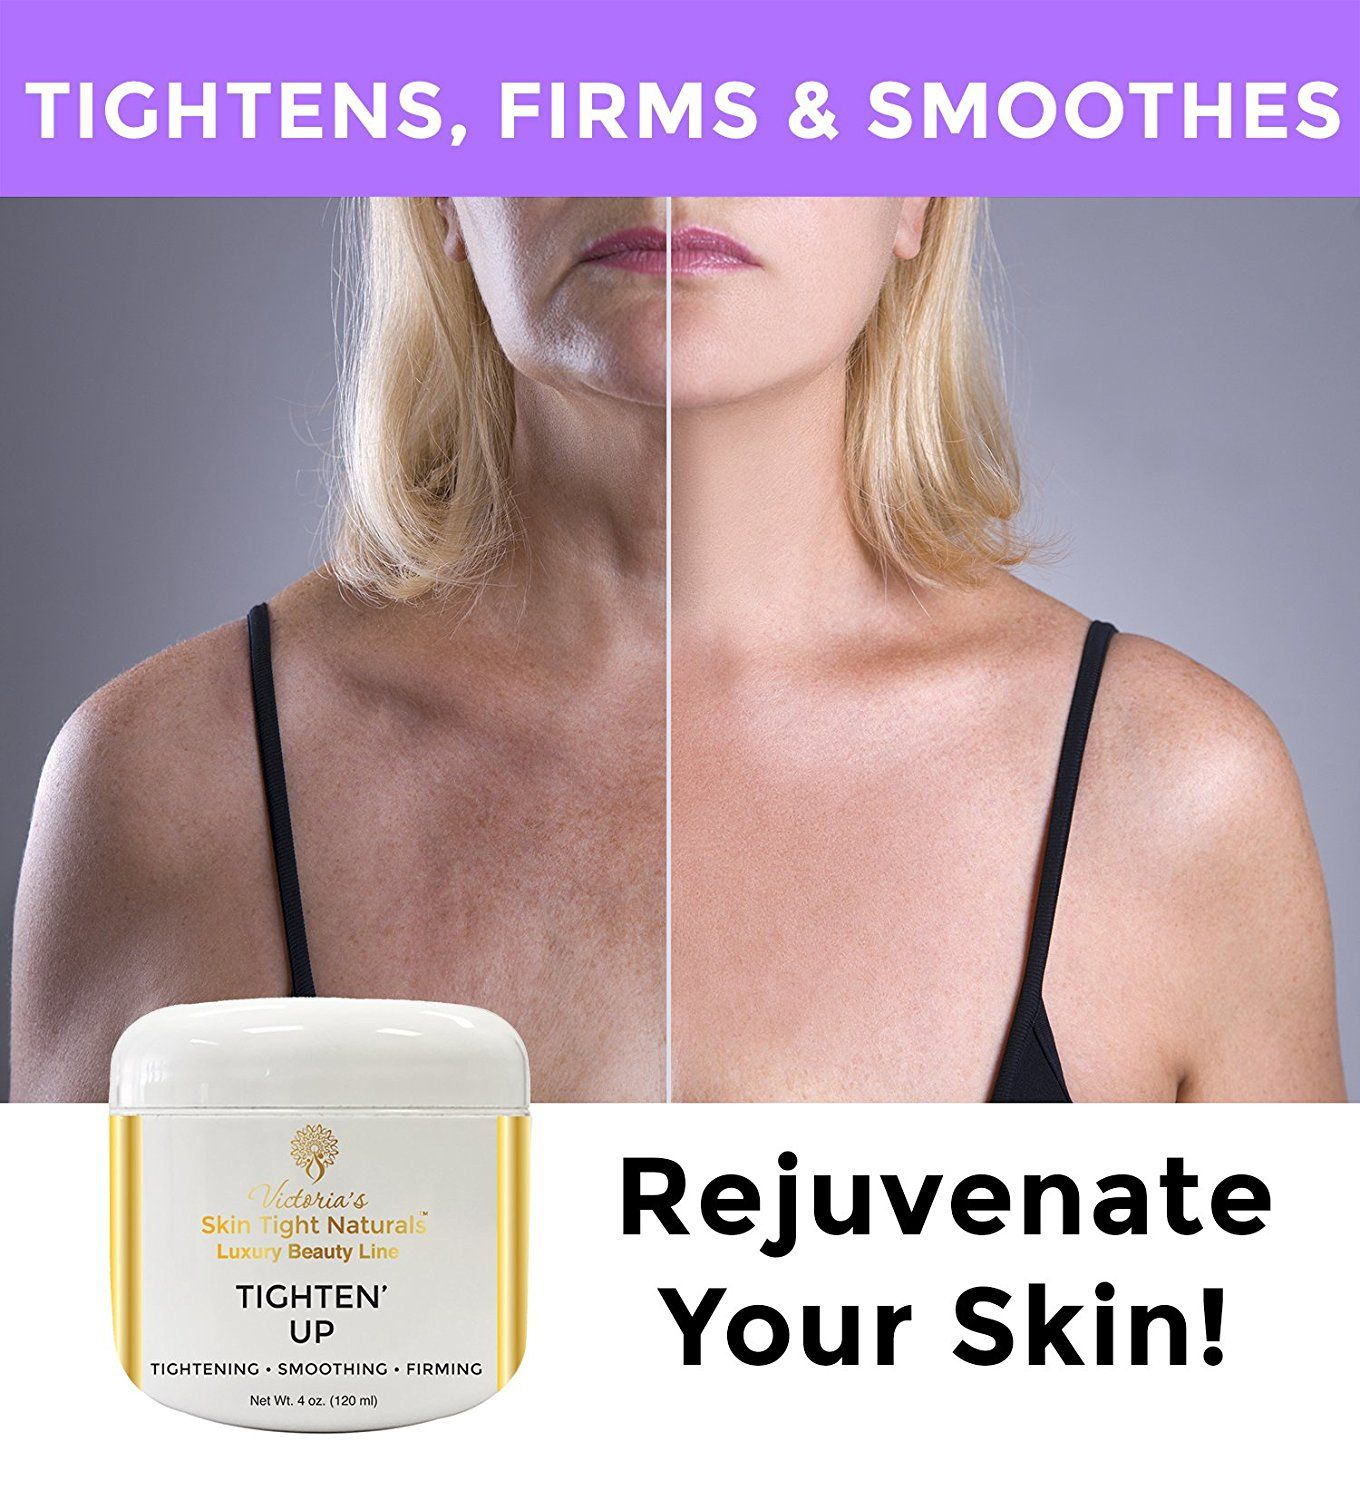 Best Anti Aging Cream To Remove Wrinkles And Tighten Crepey Skin Skin Tight Naturals Crepey Skin Best Anti Aging Creams Skin Tightening